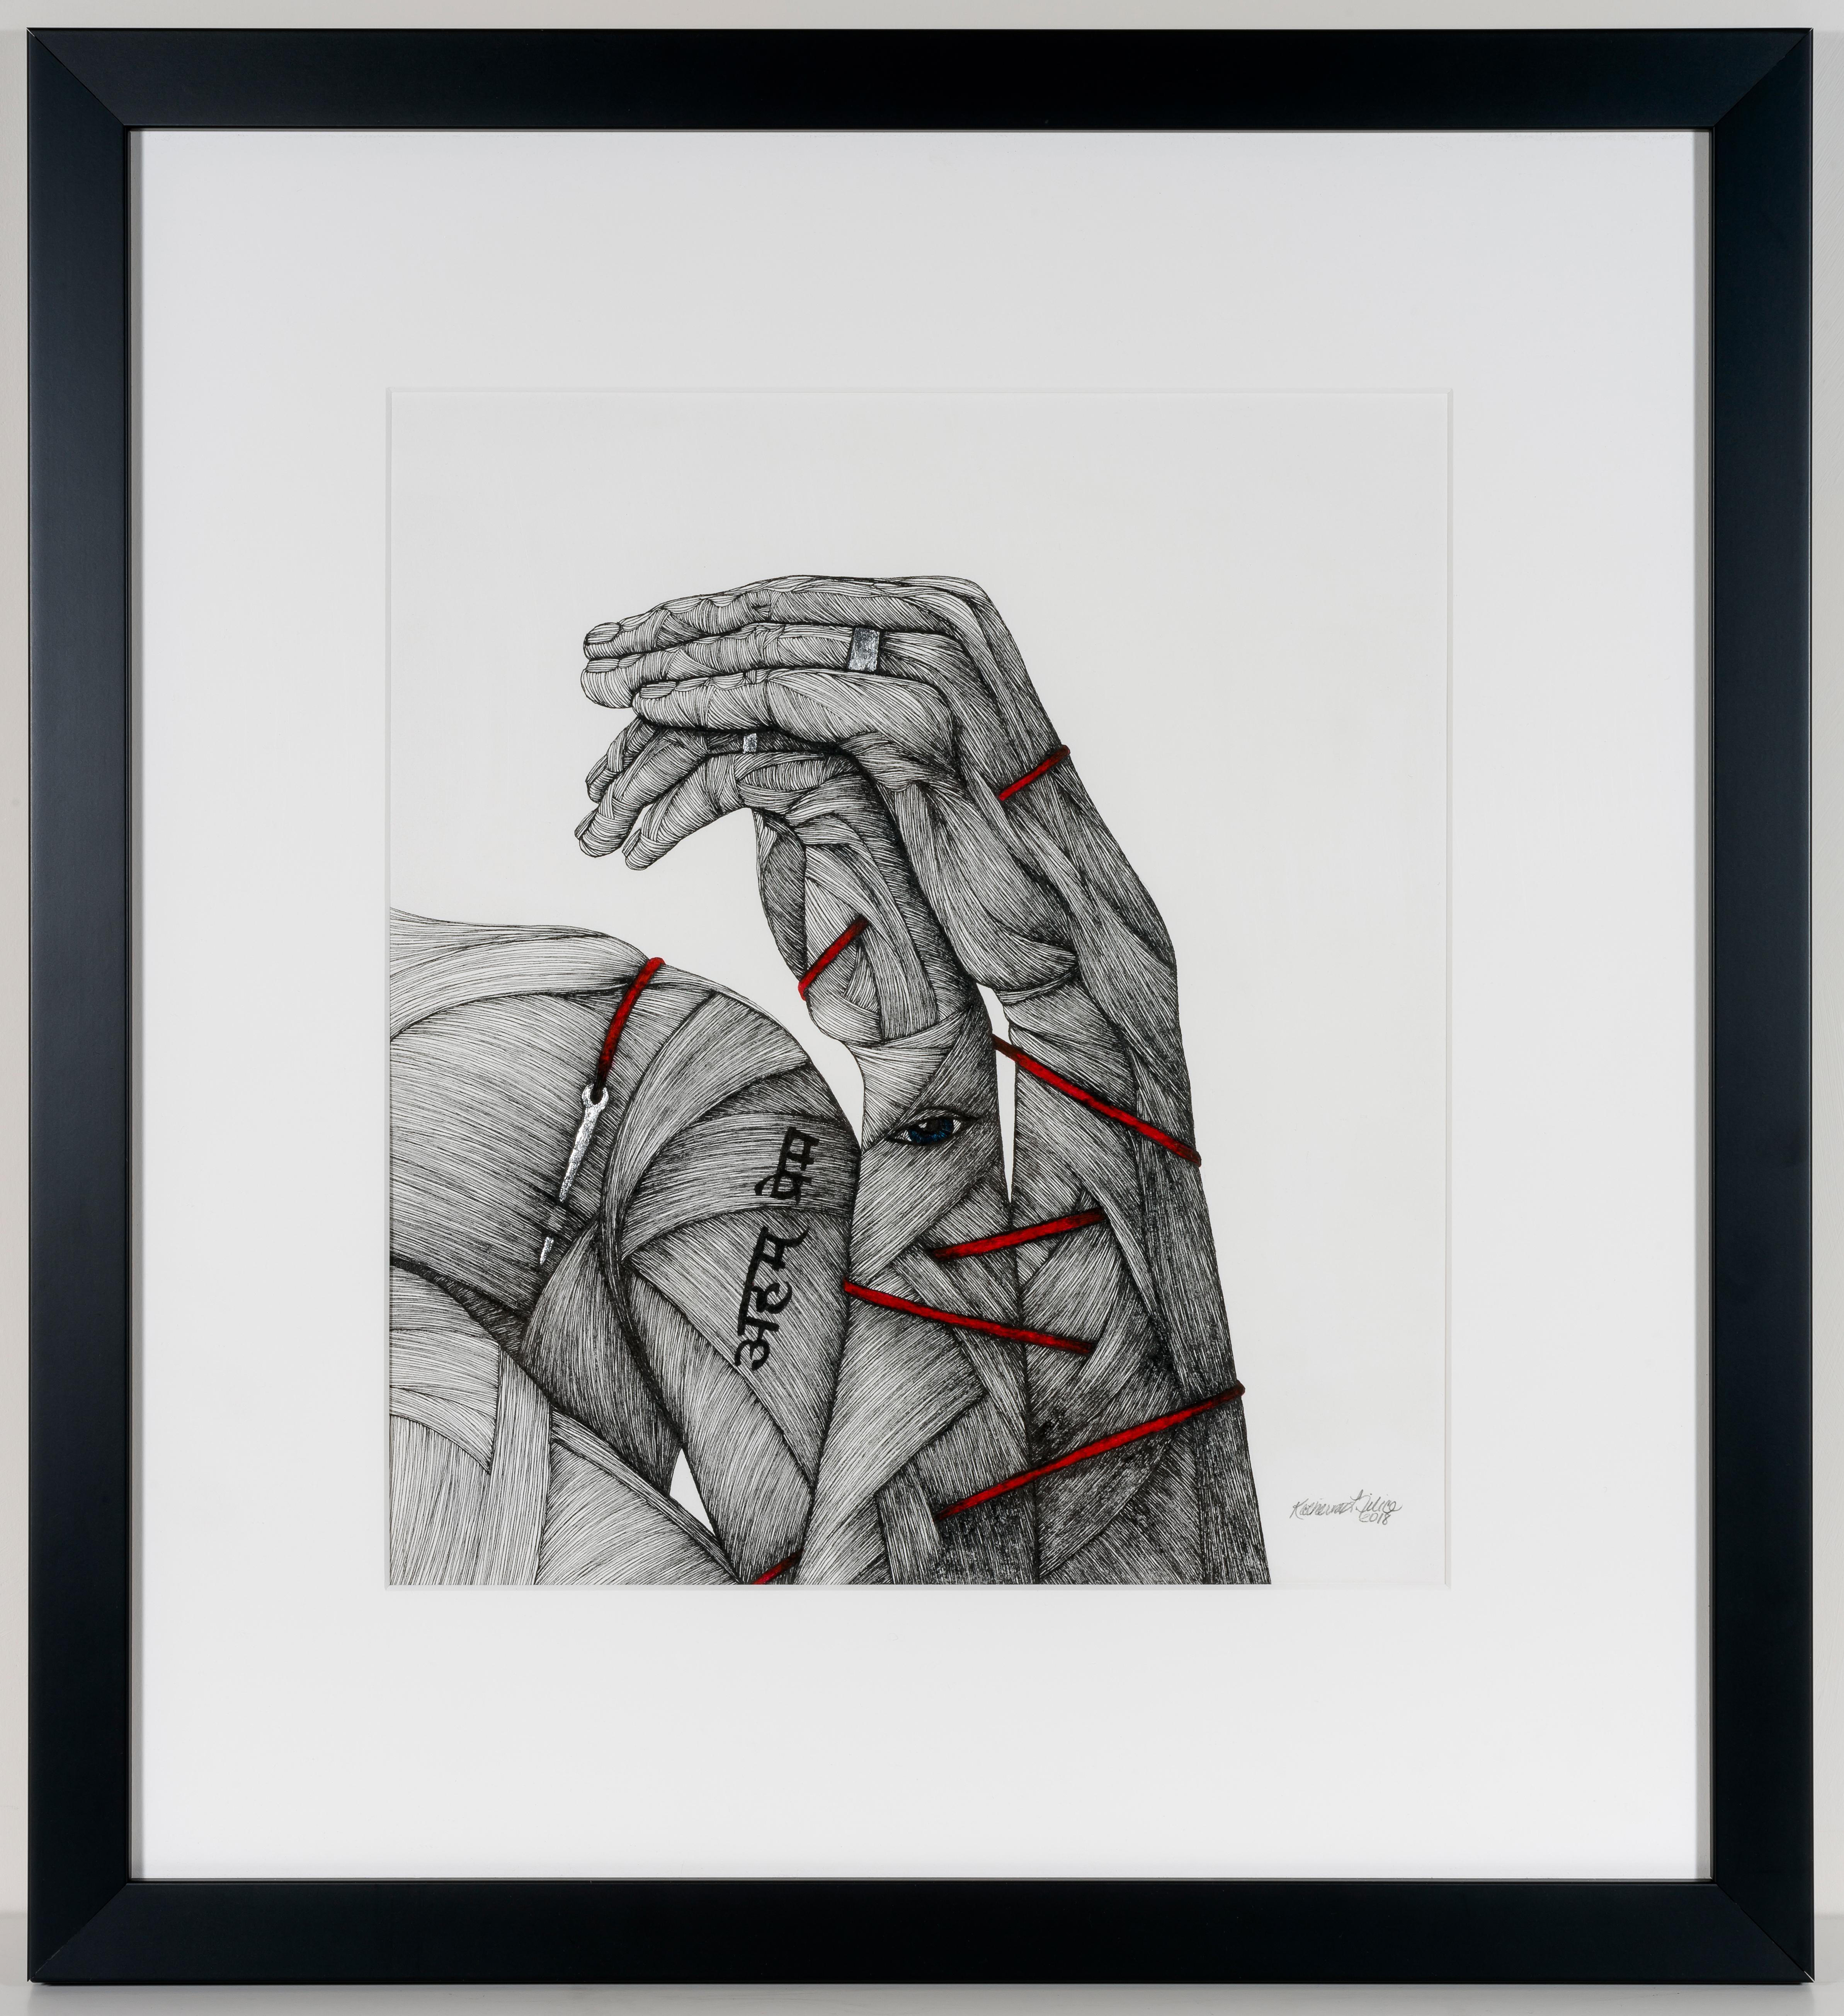 Eternity (The Sacrament)- Black and White Figurative Print in Pen and Ink